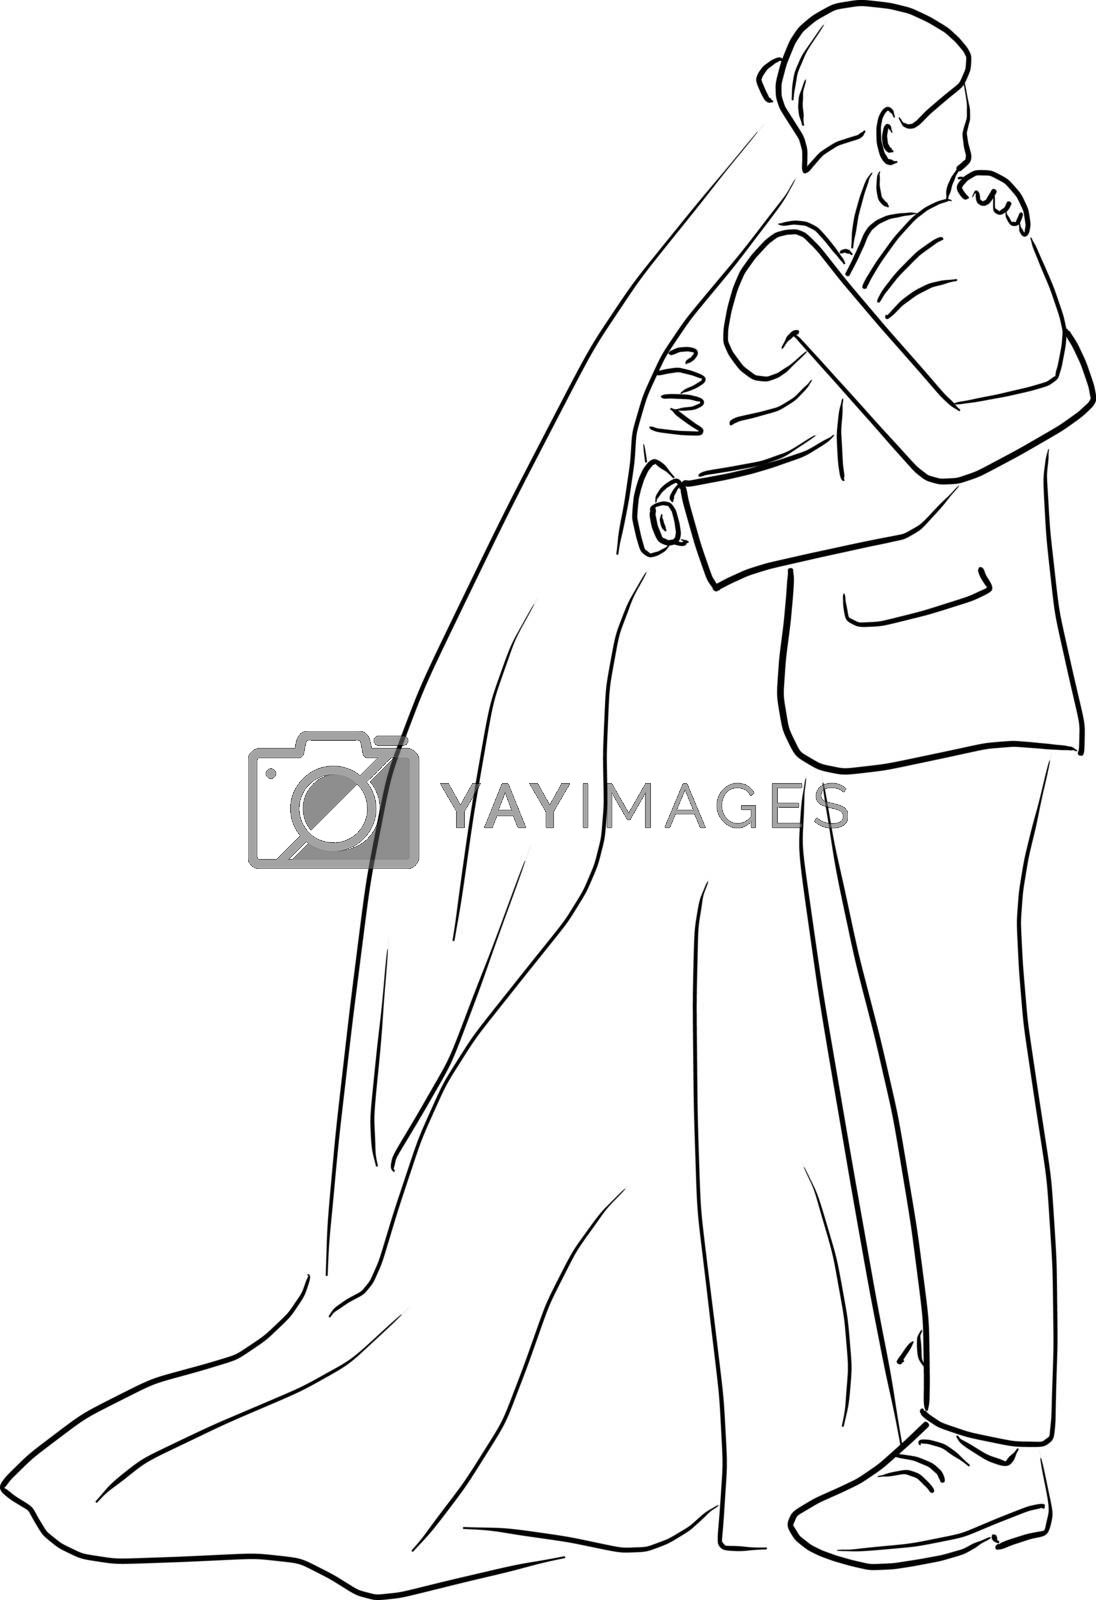 Happy wedding couple embracing vector illustration sketch doodle hand drawn isolated on white background